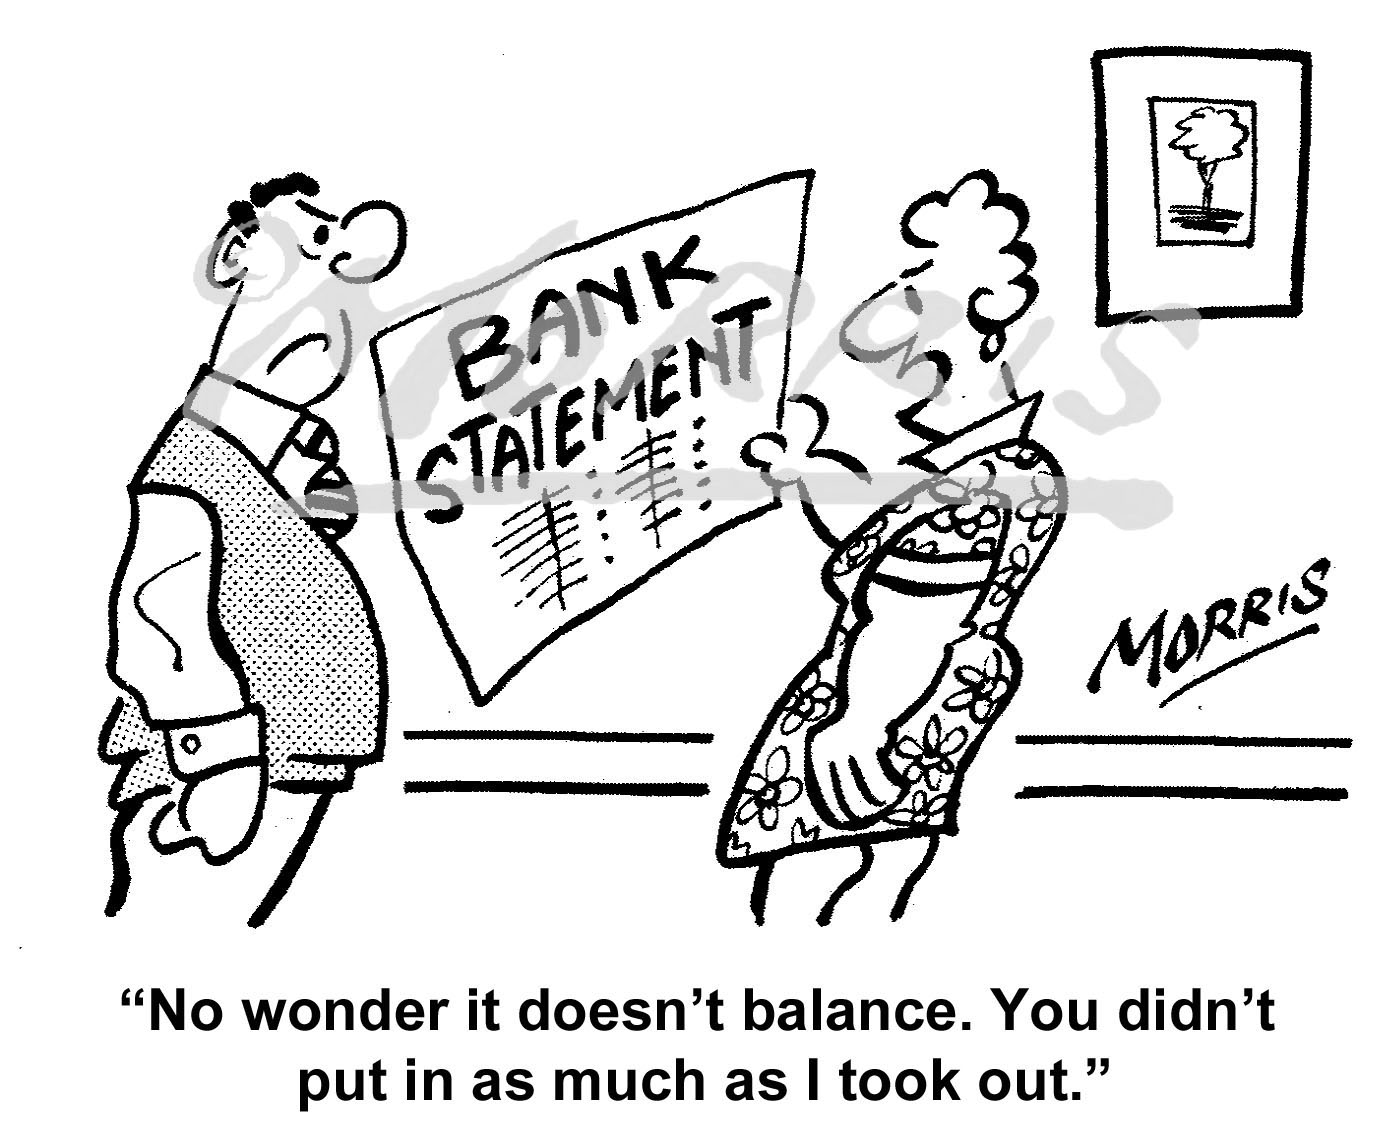 Bank statement cartoon – Ref: 7395bw